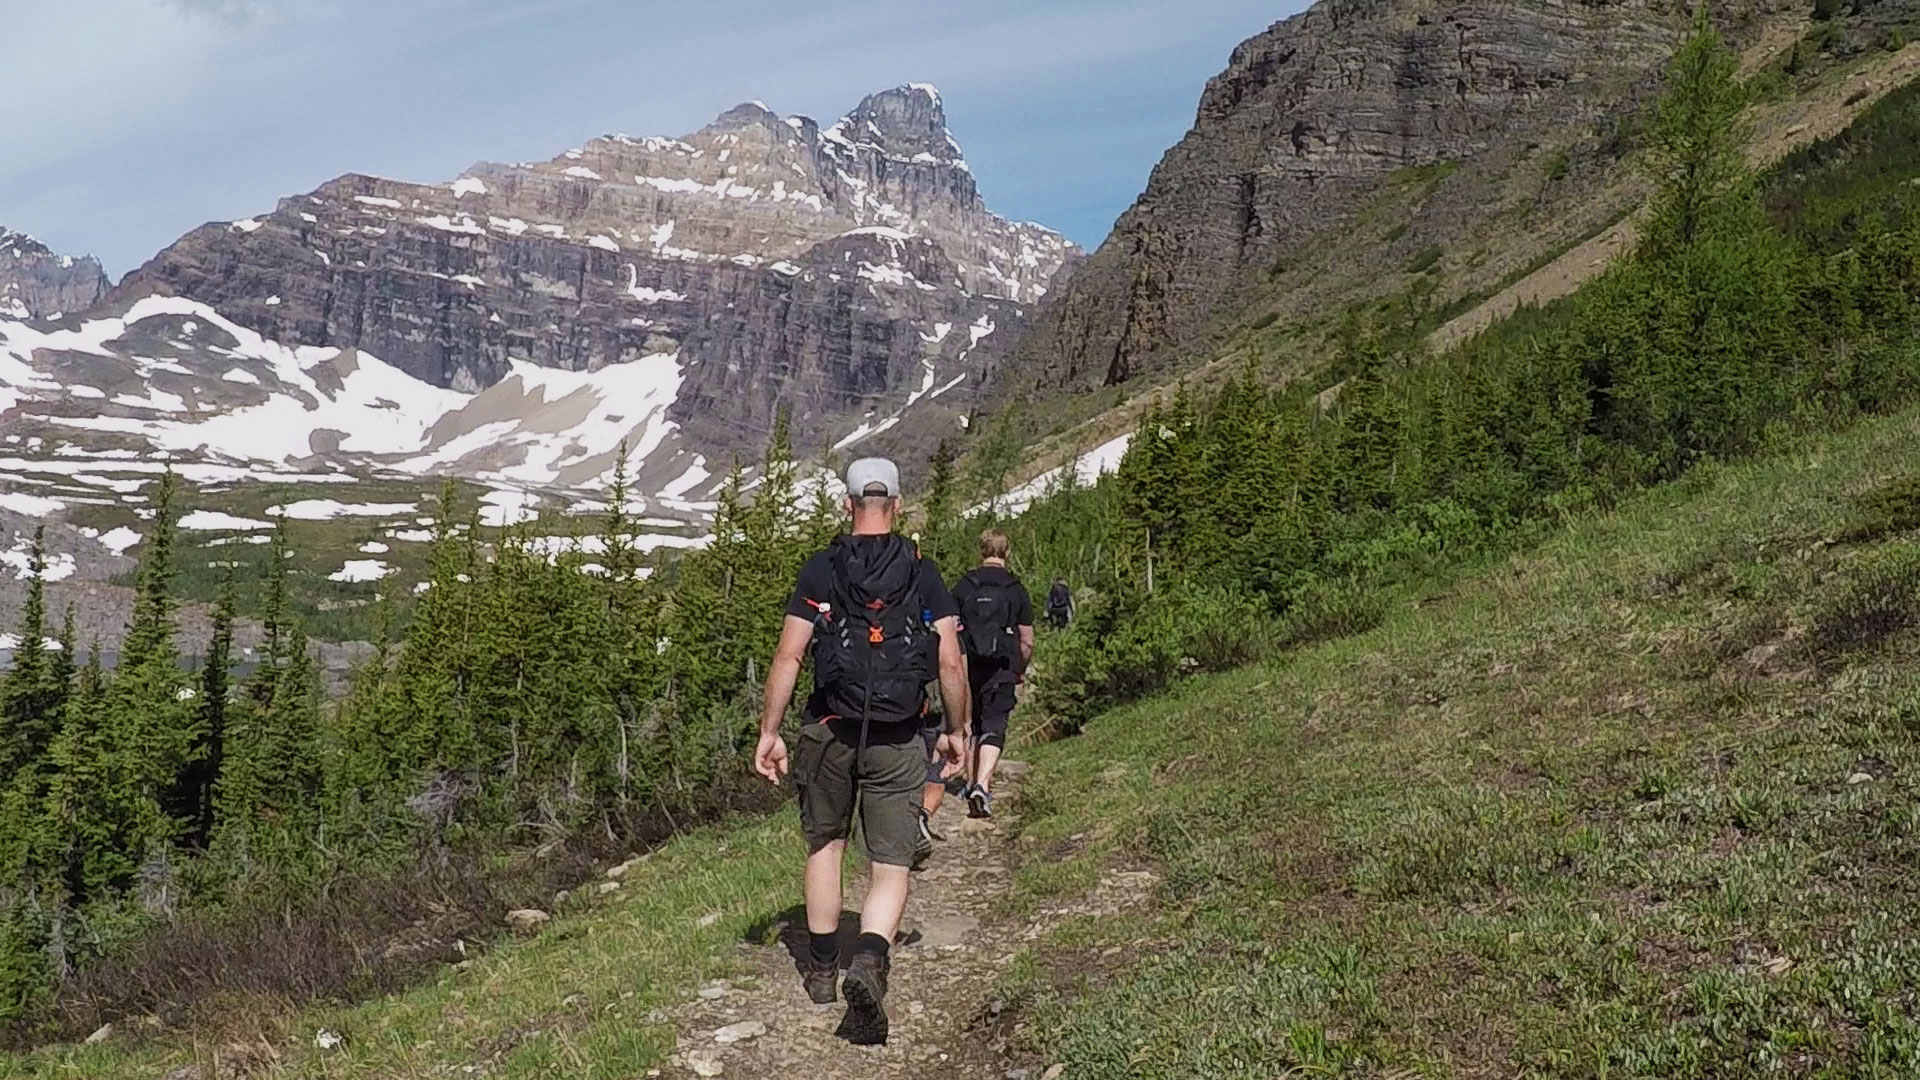 Copy of Hosted hiking tour in the Canadian Rockies.